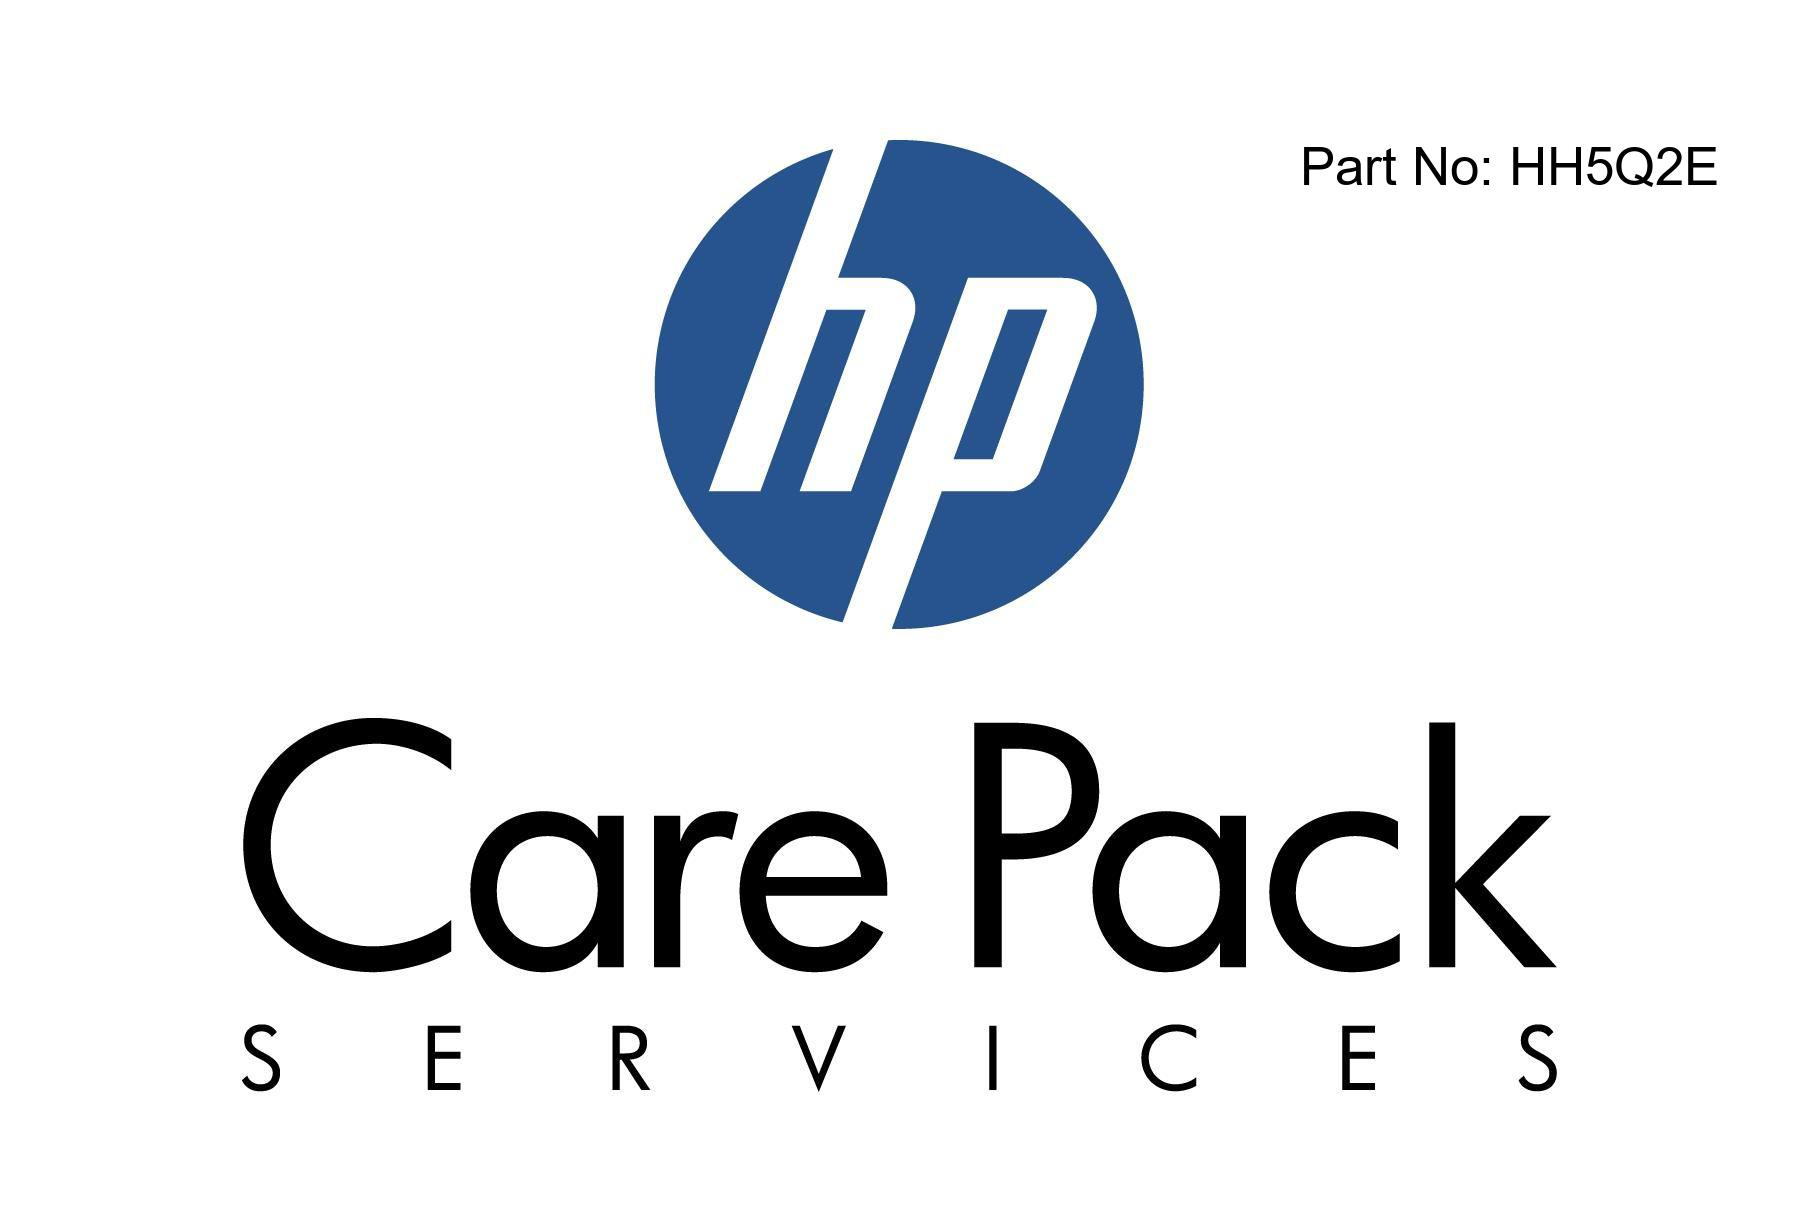 Proactive Care Call-To-Repair Service with Defective Media Retention - Extended service agreement - parts and labor - 4 years - on-site - 24x7 - repair time: 6 hours - for P/N: Q2P72AR Q2P72B Q2P73B Q2P74AR Q2P74B Q2P75AR Q2P75B Q2P77A Q2P78A Q2P79A